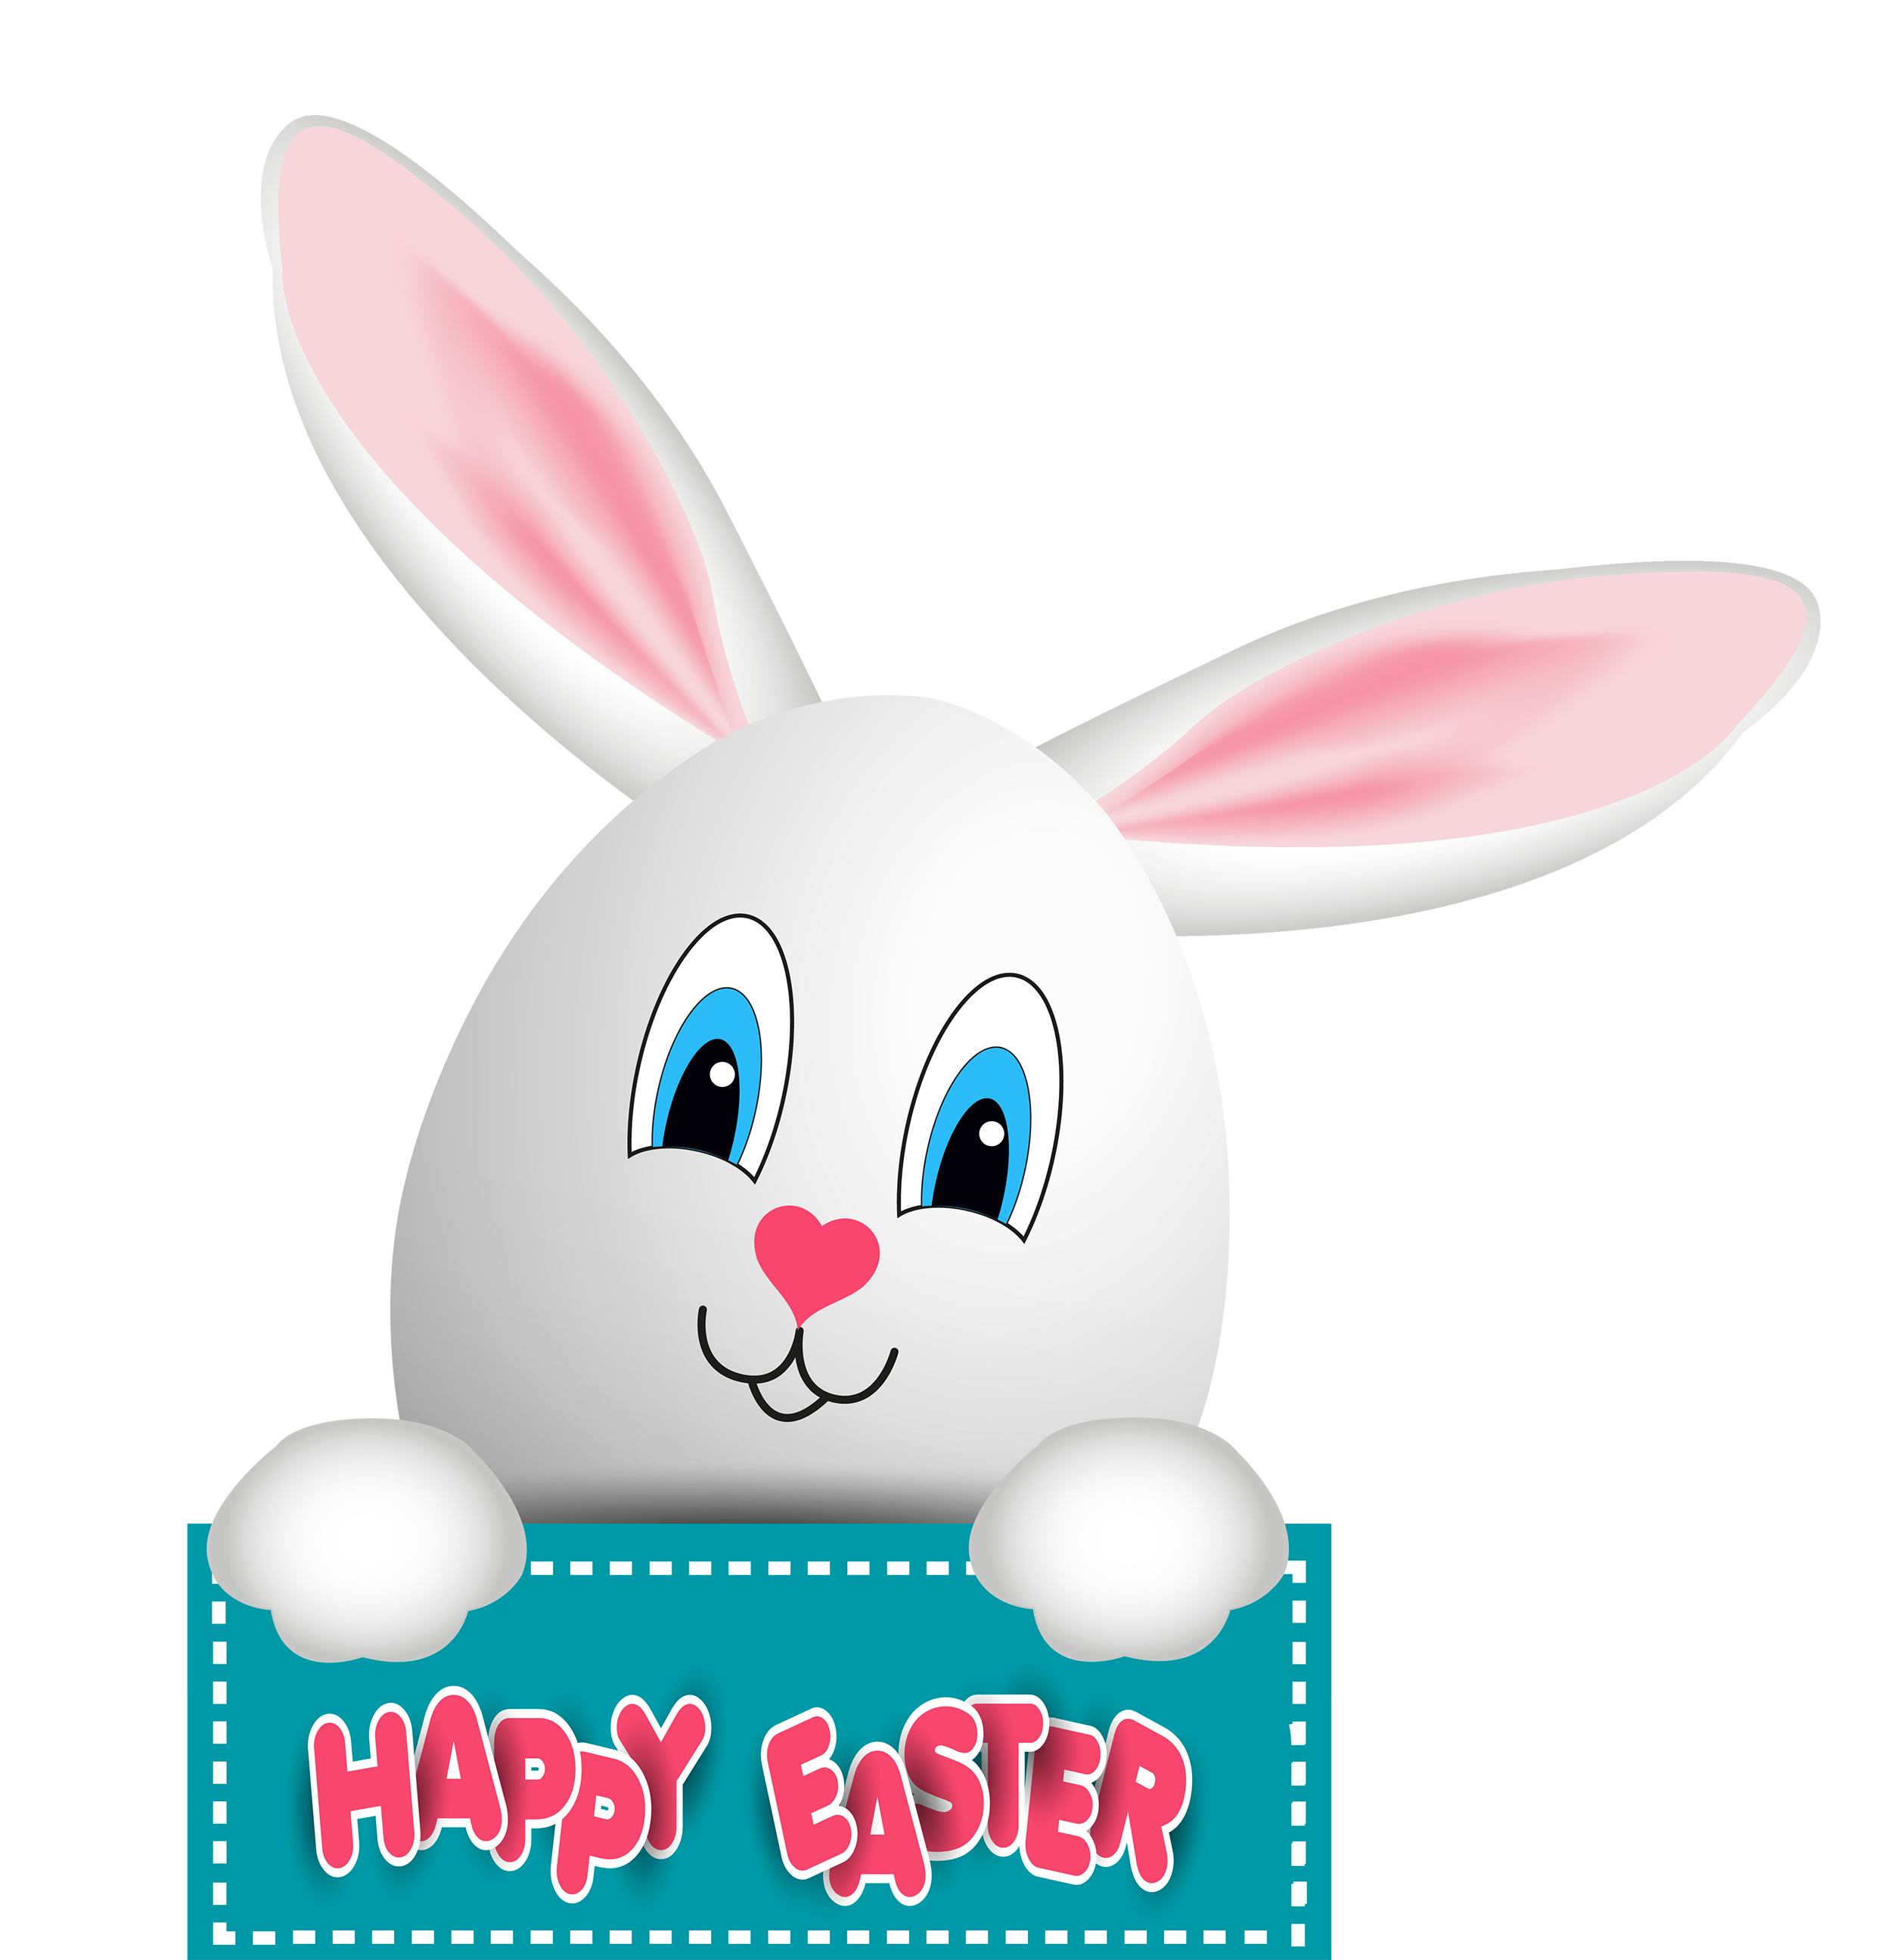 Bunny clipart png vector black and white stock Easter Bunny PNG Clip Art - Best WEB Clipart vector black and white stock